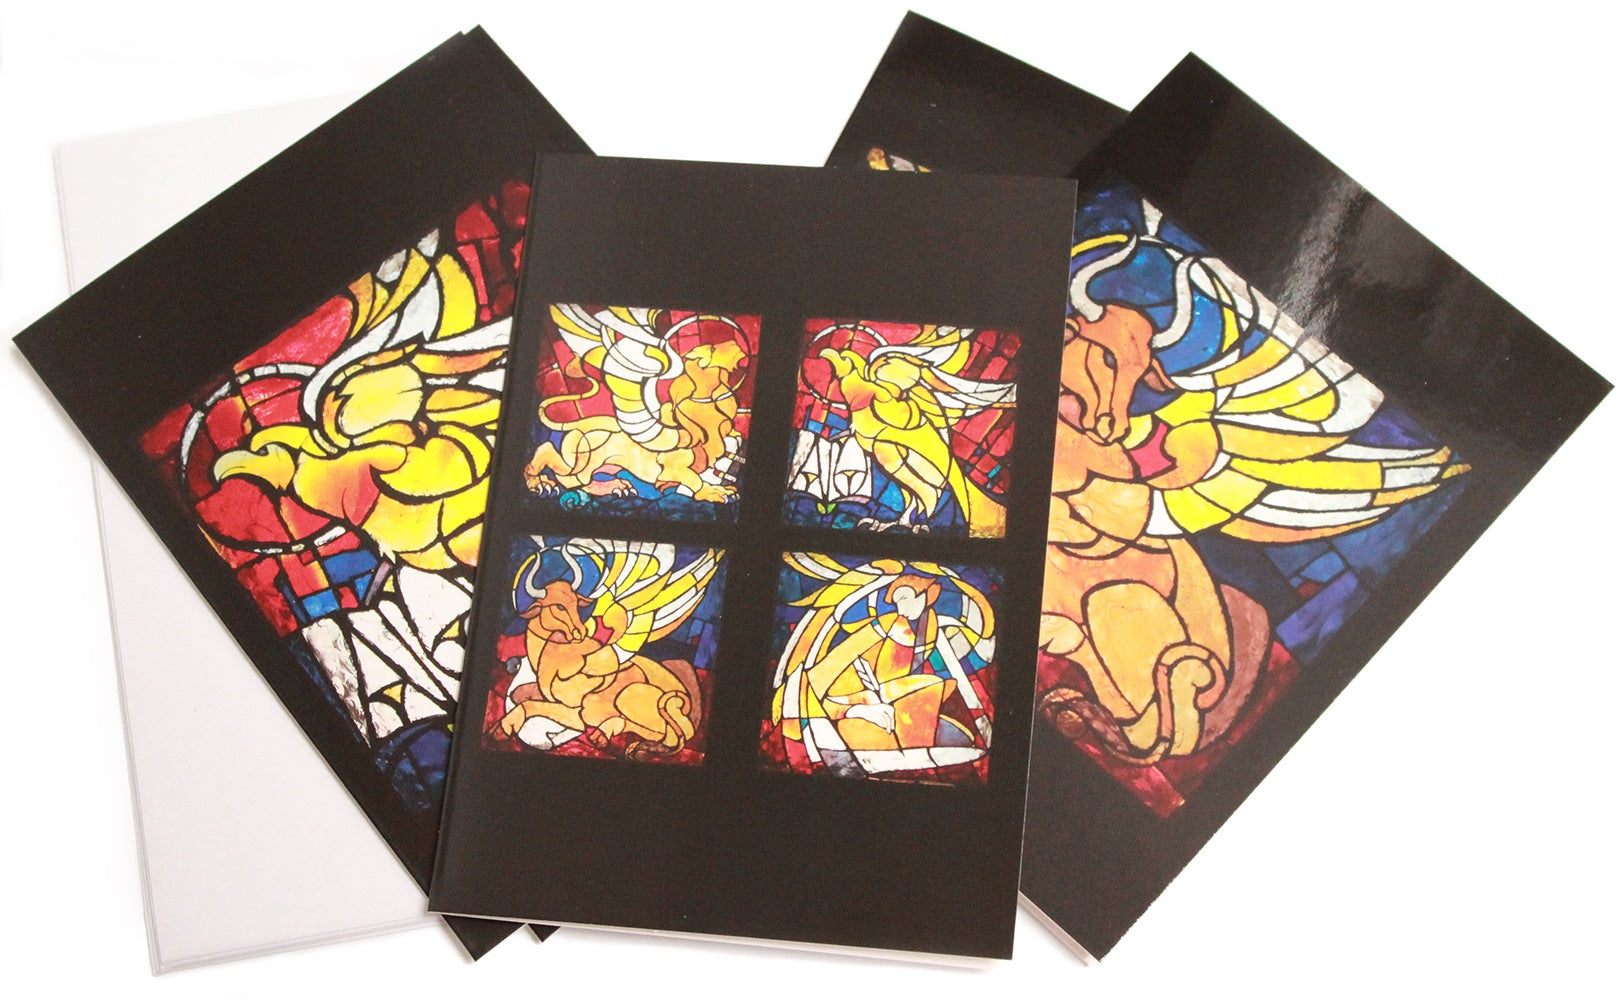 greeting cards showing bright stained glass images of the four evangelists, Matthew, Mark, Luke and John, represented by the angel, lion, ox and eagle